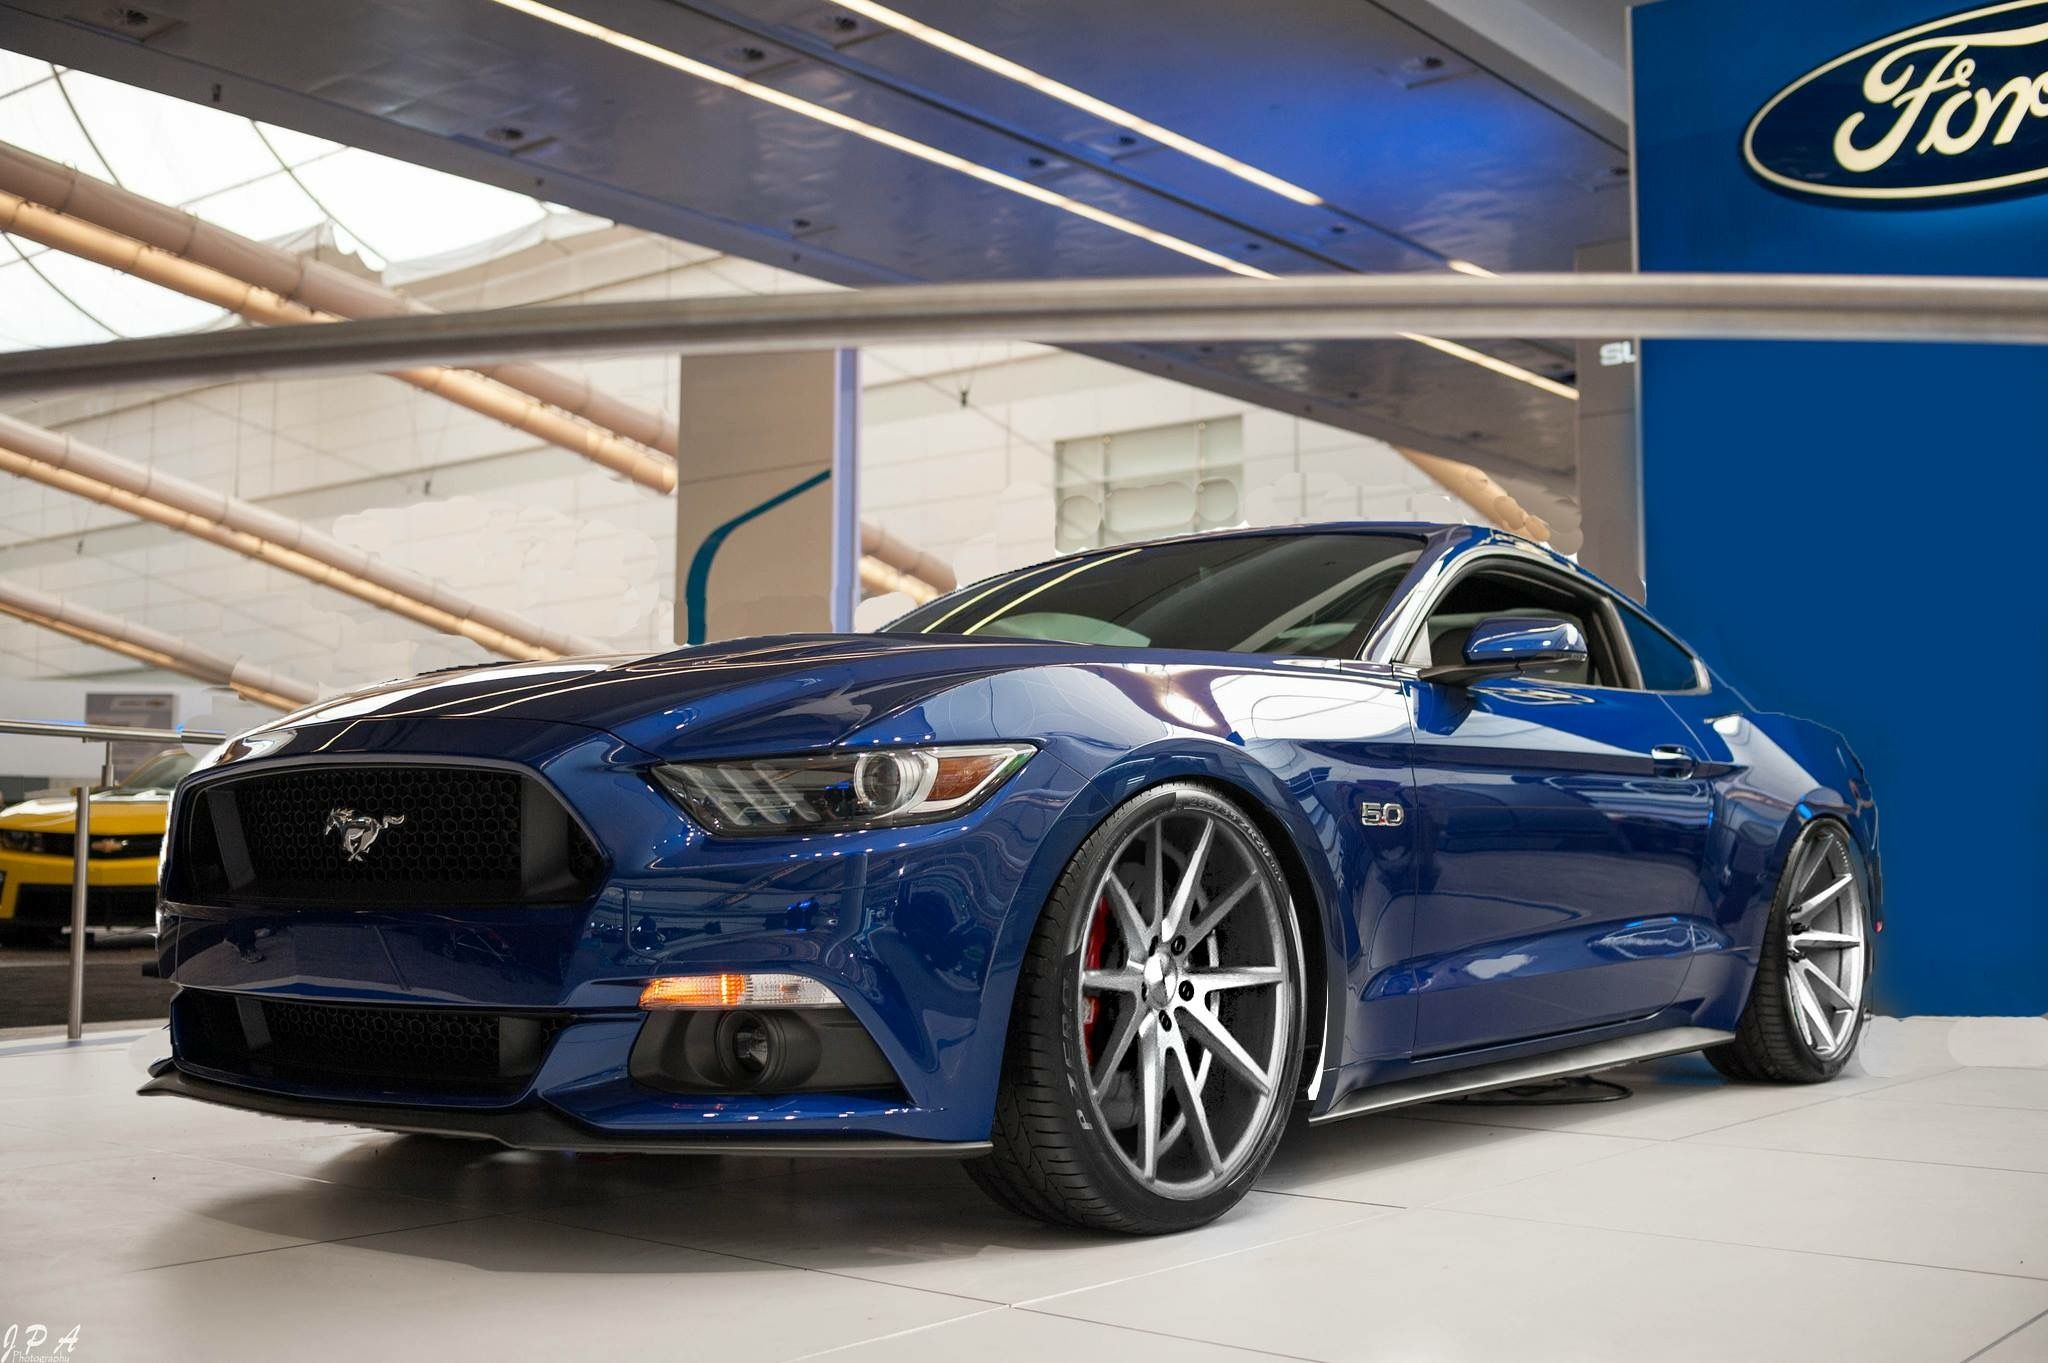 2015 ford mustang nice cars cars motorcycles search mustangs tumblr album beautiful garage